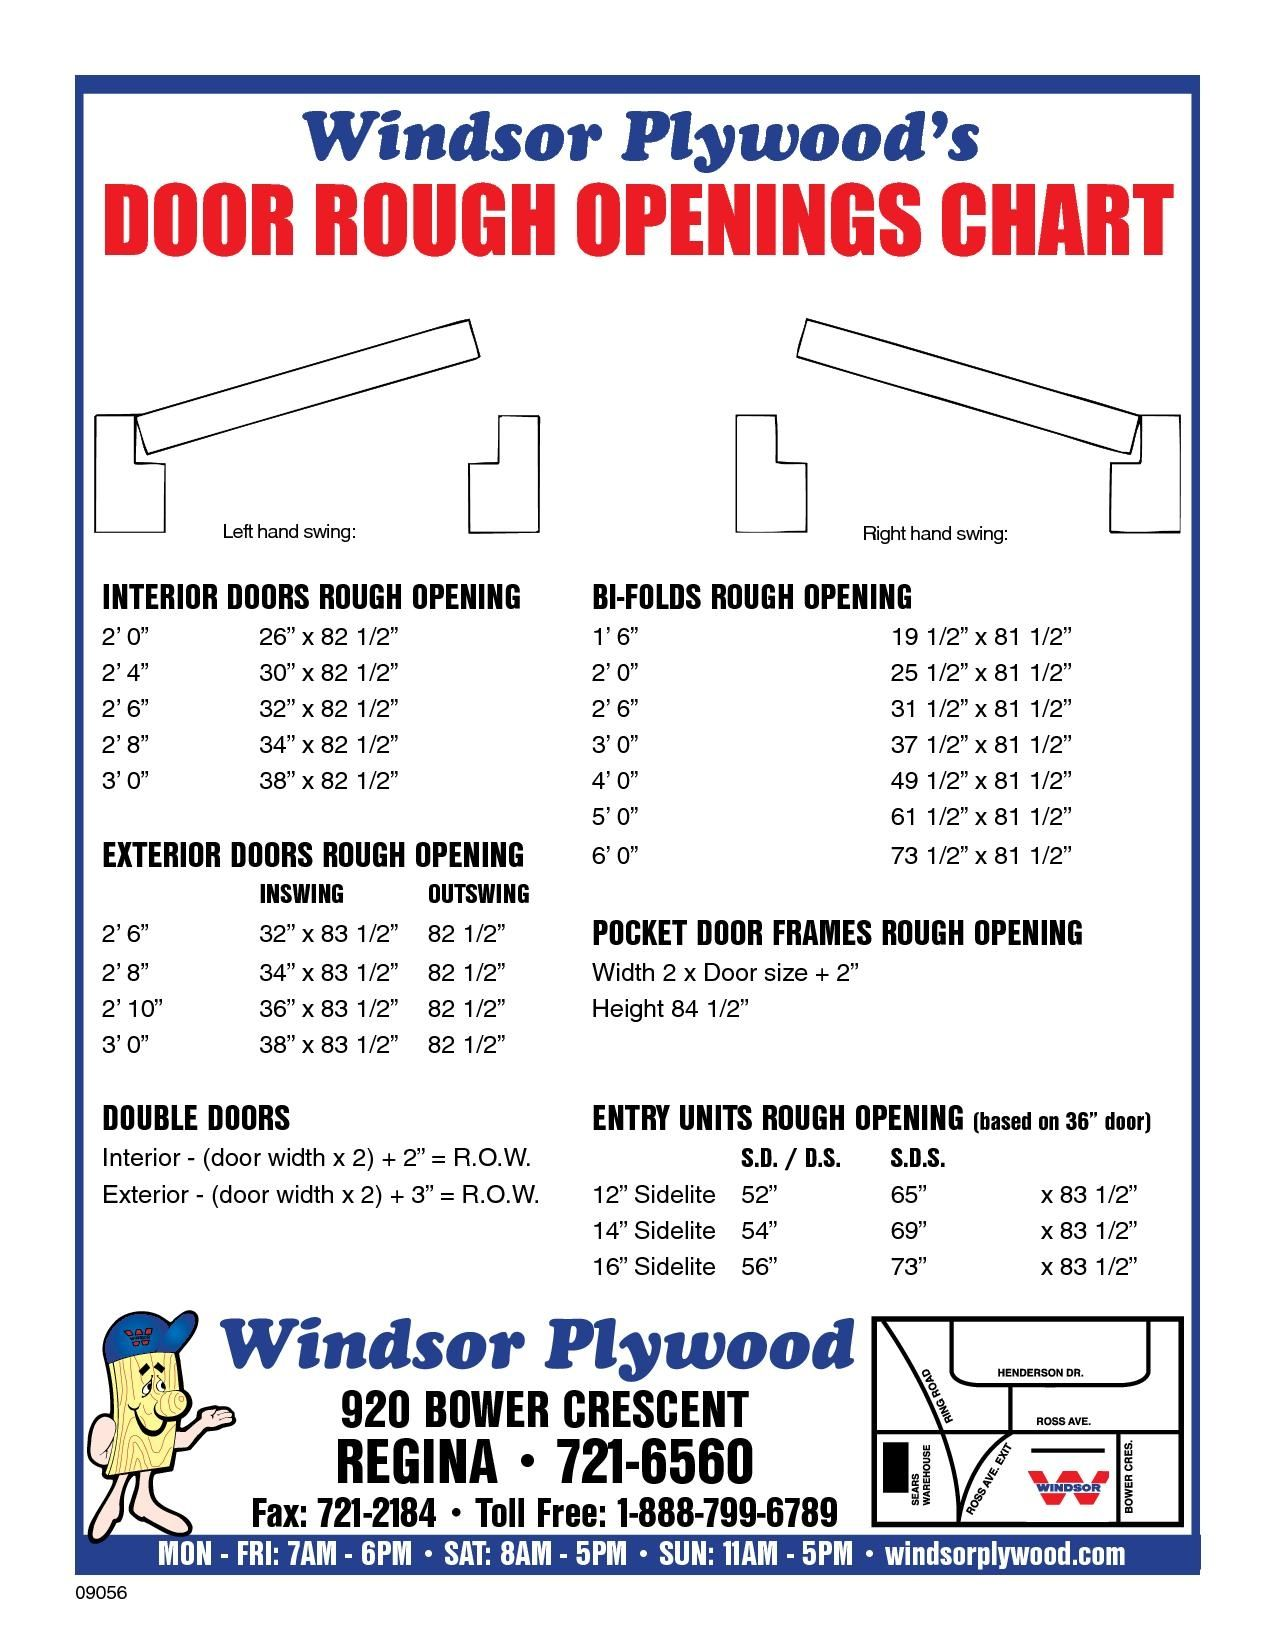 Closet Bifold Door Rough Opening The Cabinet Is Vital Have For Any Home To Provide That Extra Storage Sp Garage Door Sizes Doors Interior Bifold Closet Doors